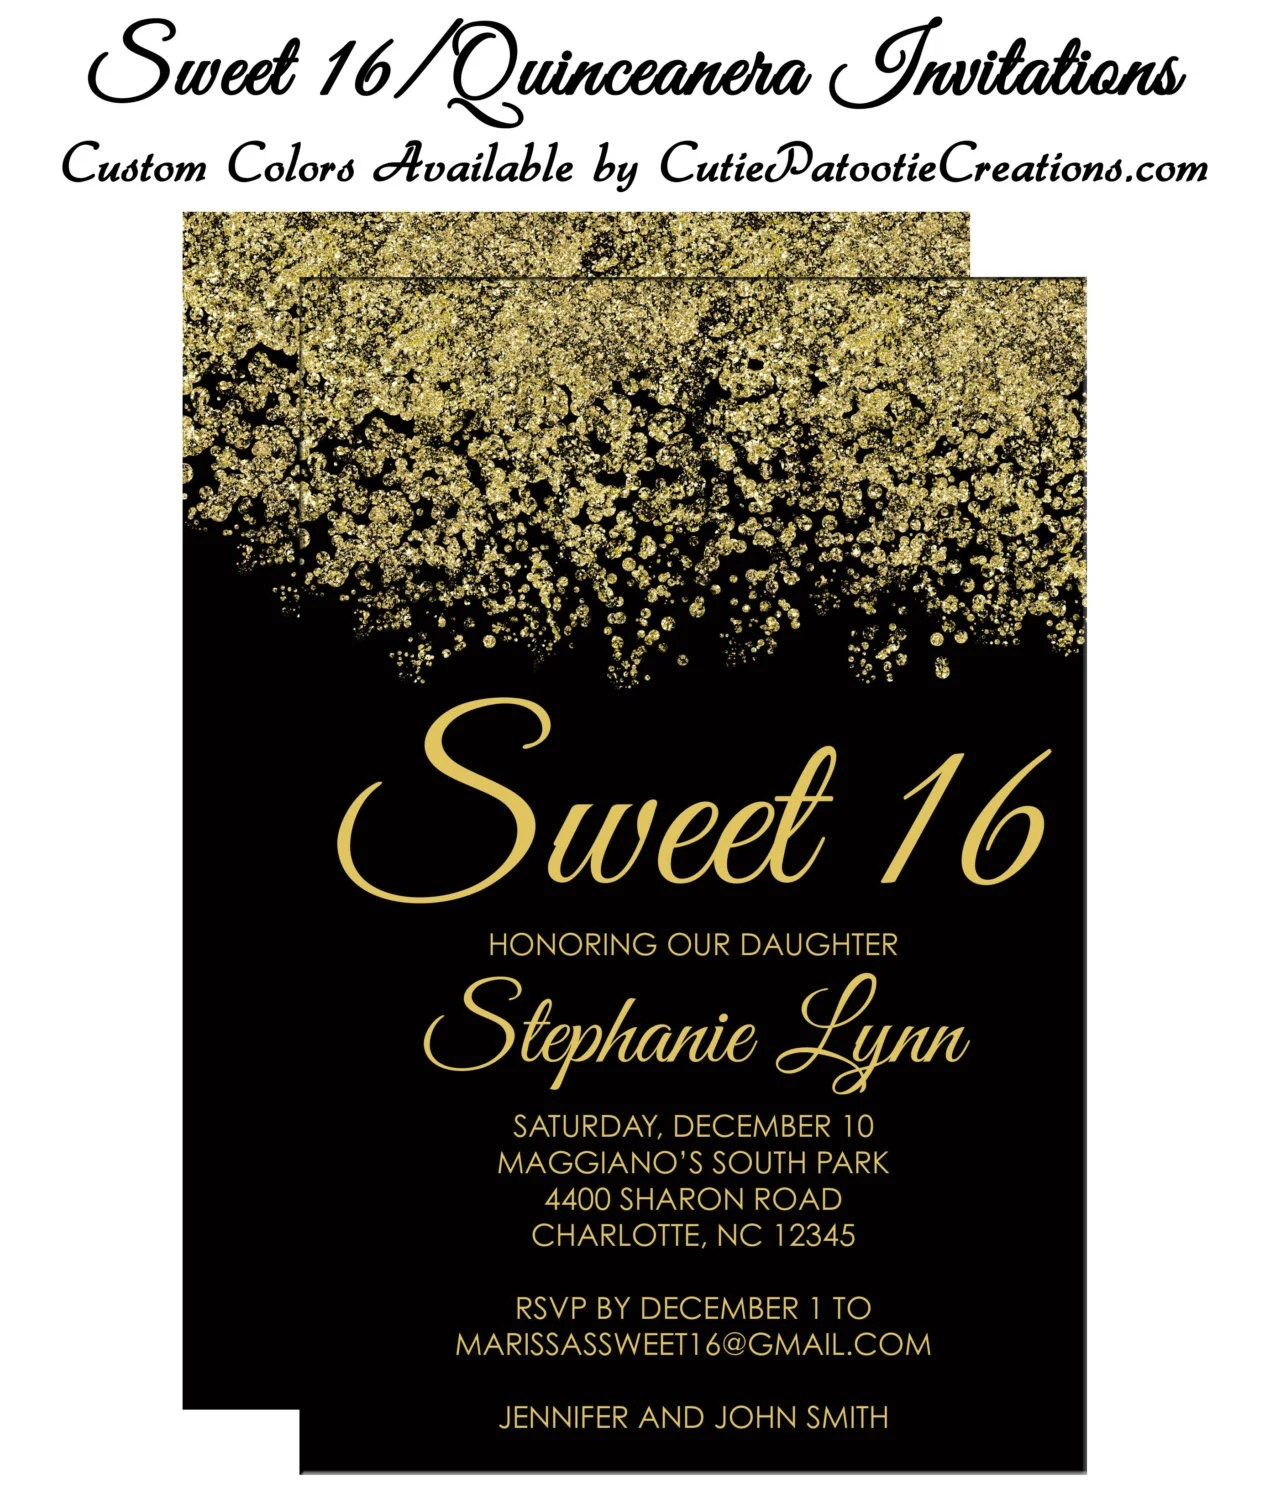 sweet 16 invitations quinceanera invitation red and gold sparkle faux glitter sweet sixteen guest return addressing available